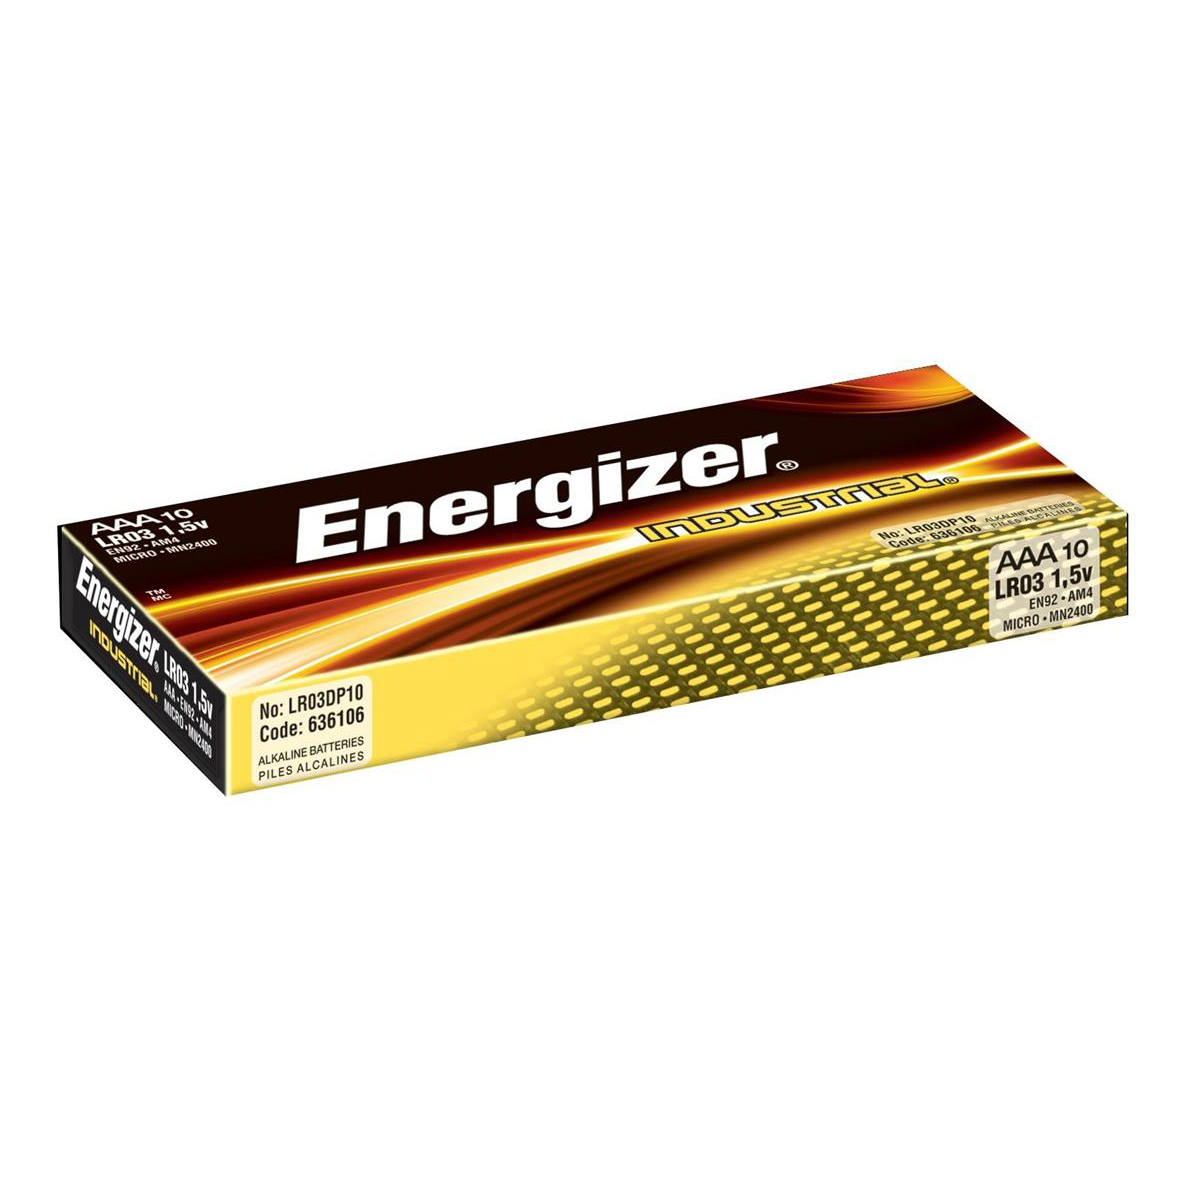 AAA Energizer Industrial Battery Long Life LR03 1.5V AAA Ref 636106 Pack 10